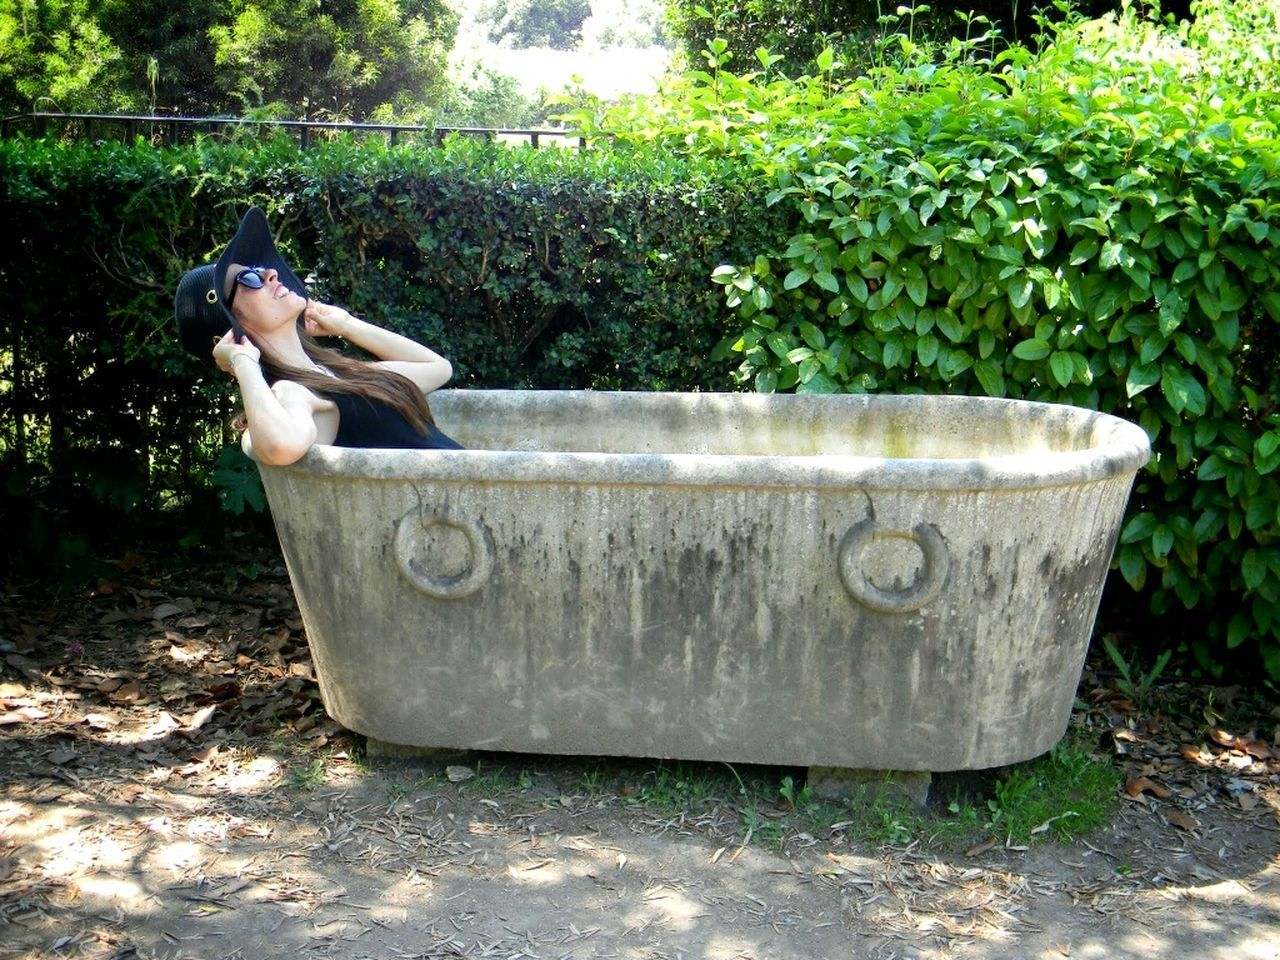 Young women in ancient Roman bathtub in Italy Rome Rome Italy Italy Travel Destinations Europe Model Smile Happiness Fun Wanderlust One Person